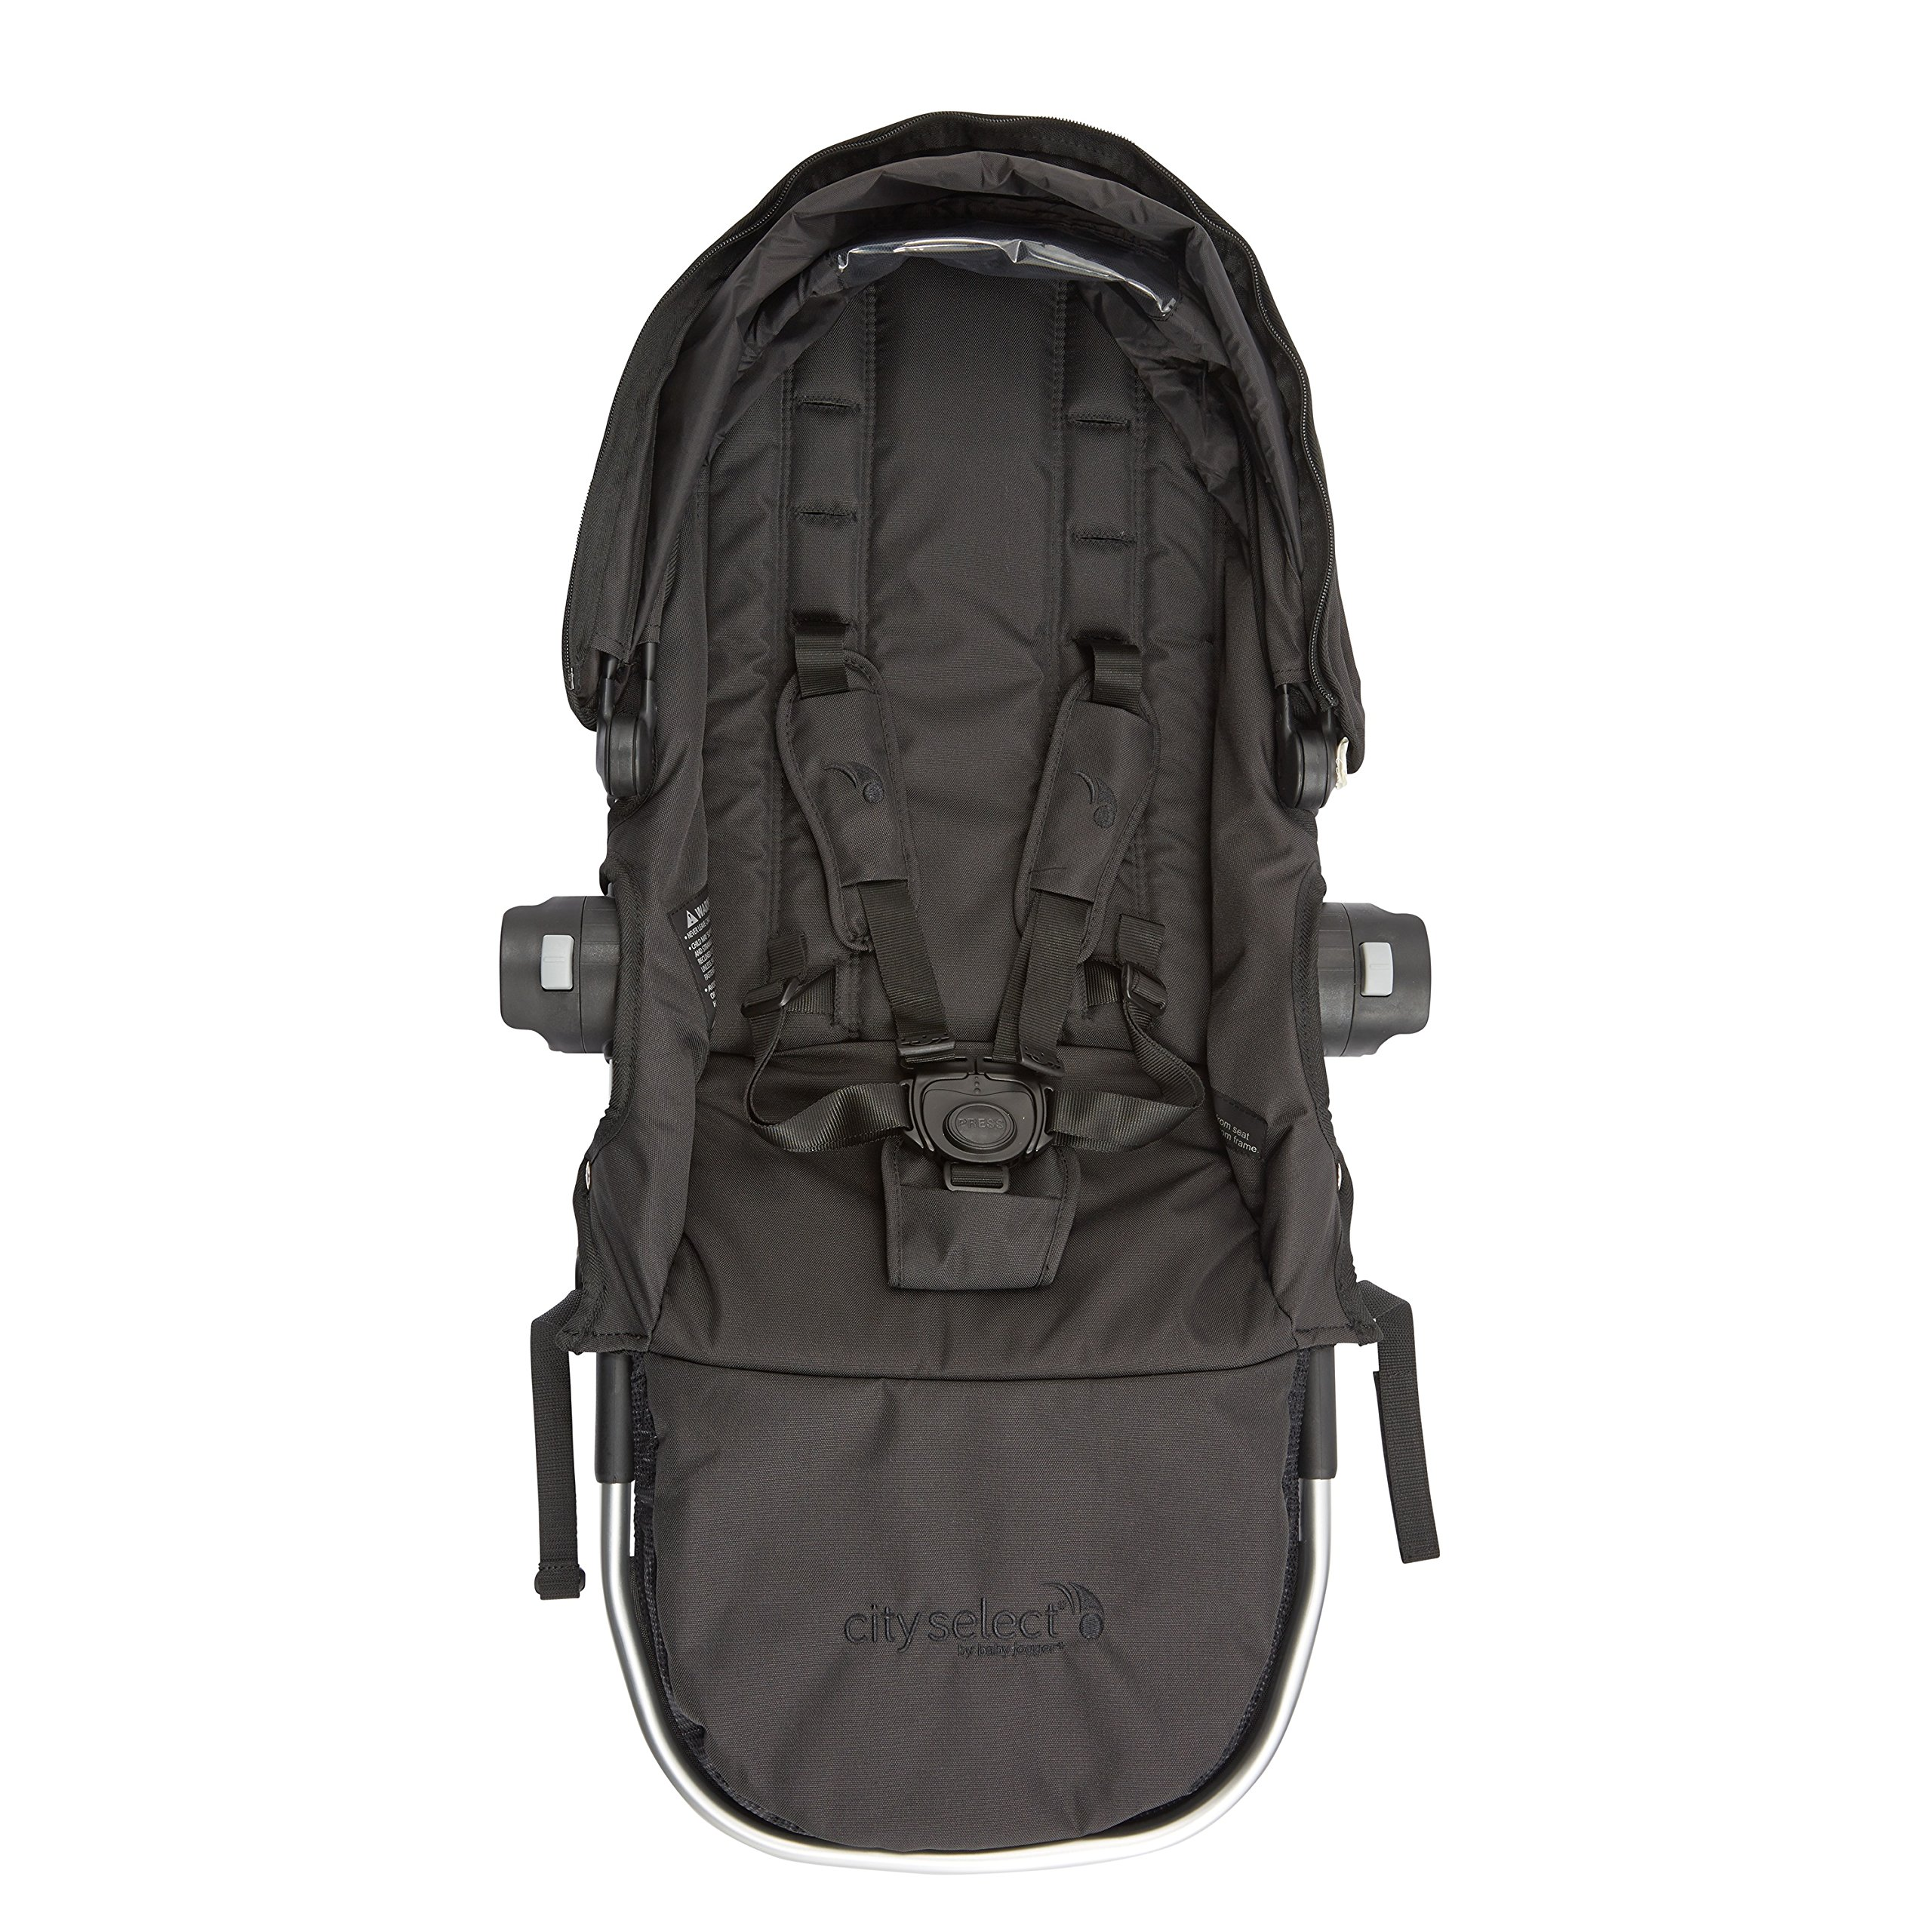 Baby Jogger City Select Second Seat Kit with Silver Frame, Onyx by Baby Jogger (Image #3)